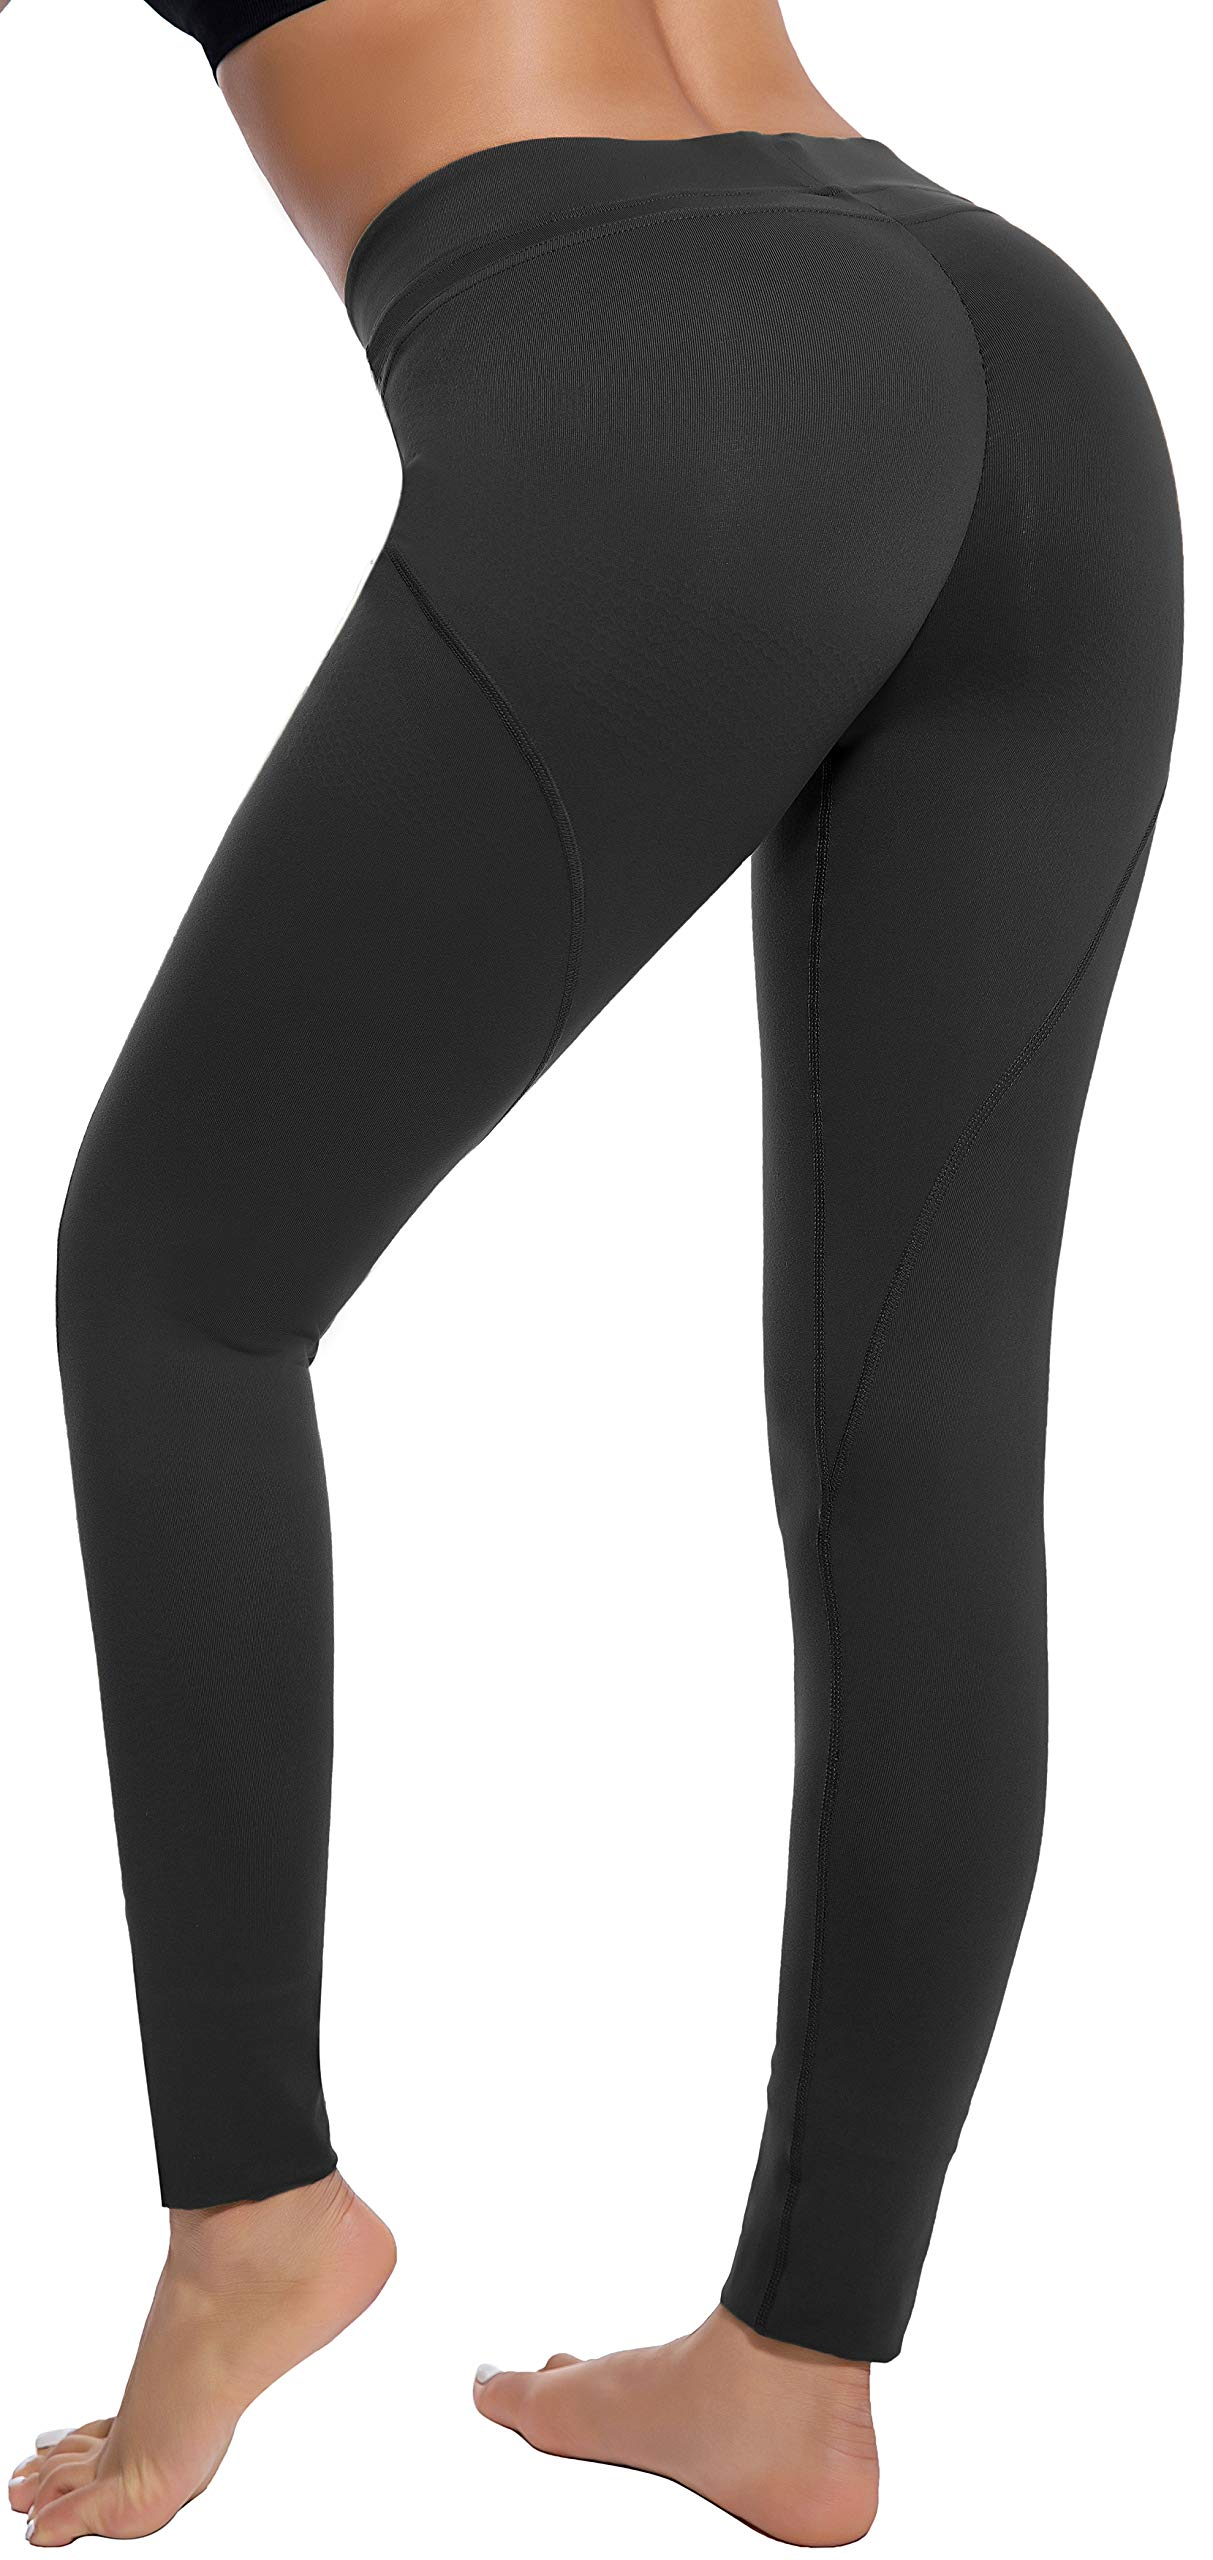 RUNNING GIRL Ombre High Waist Yoga Leggings,Butt Lifting Yoga Pants Tummy Control Compression Gym Workout Leggings for Women